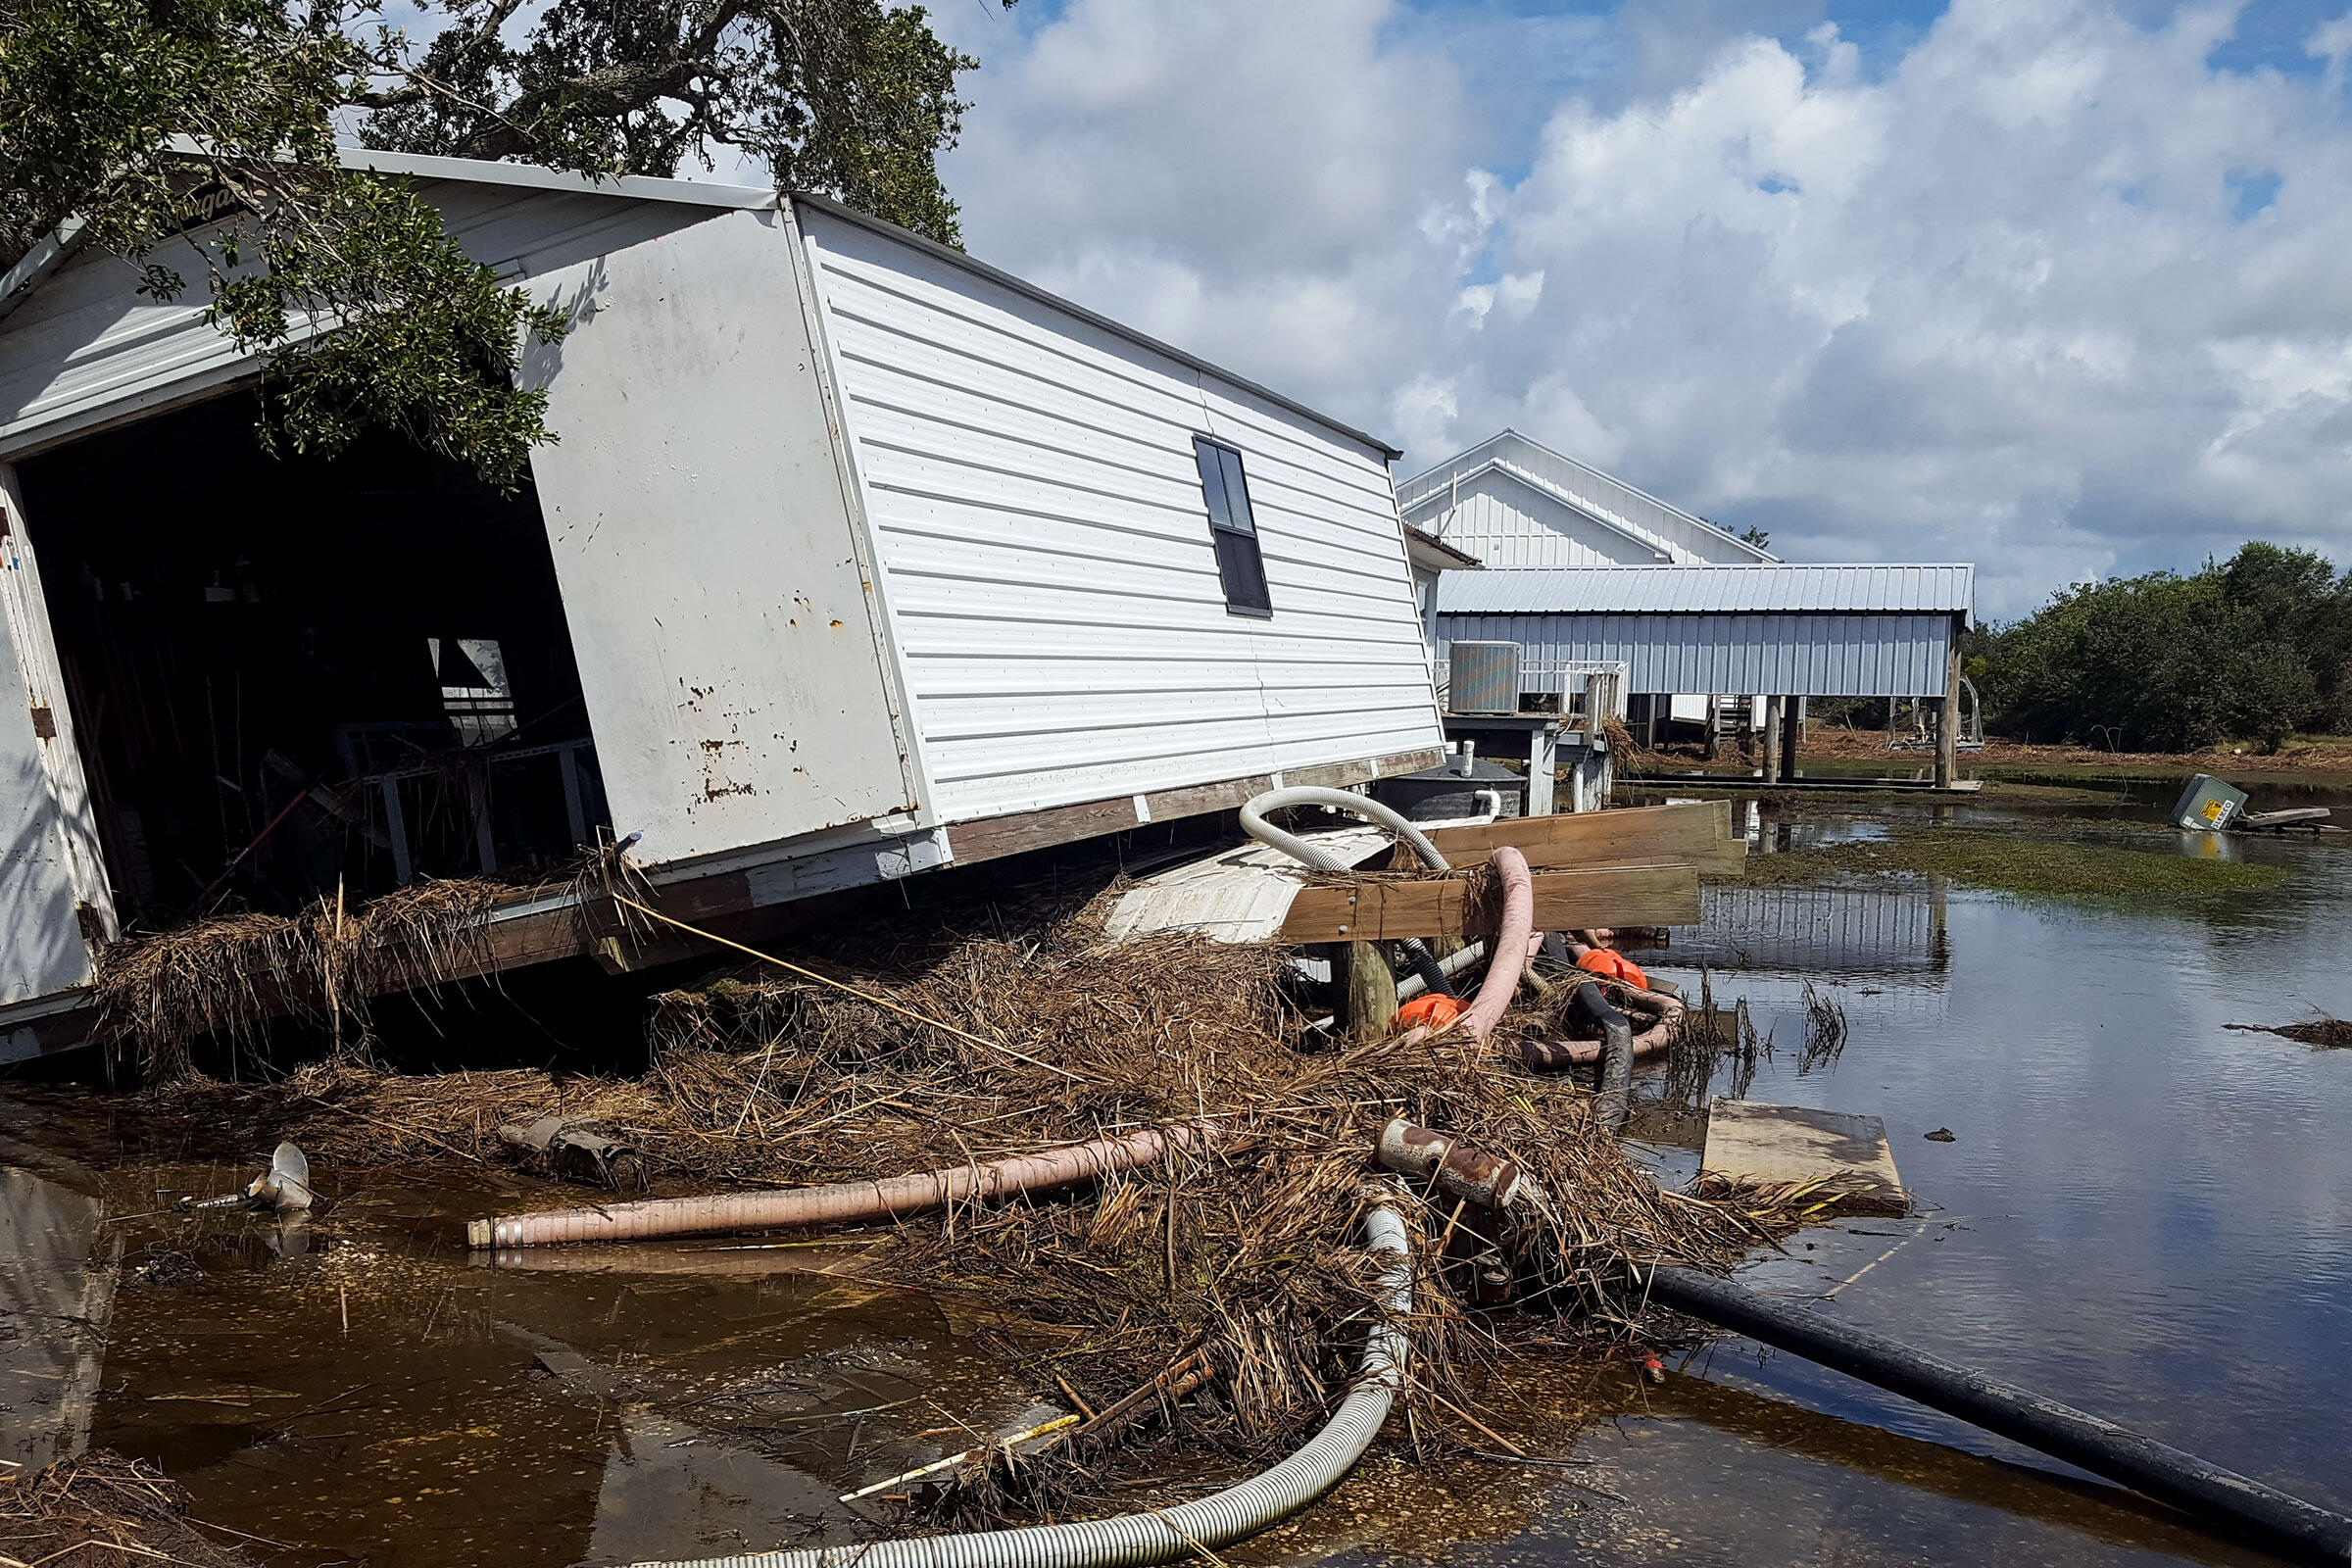 A storage shed was knocked off its foundation by storm surge and filled with debris at Rainey Wildlife Sanctuary. Erik Johnson/Audubon